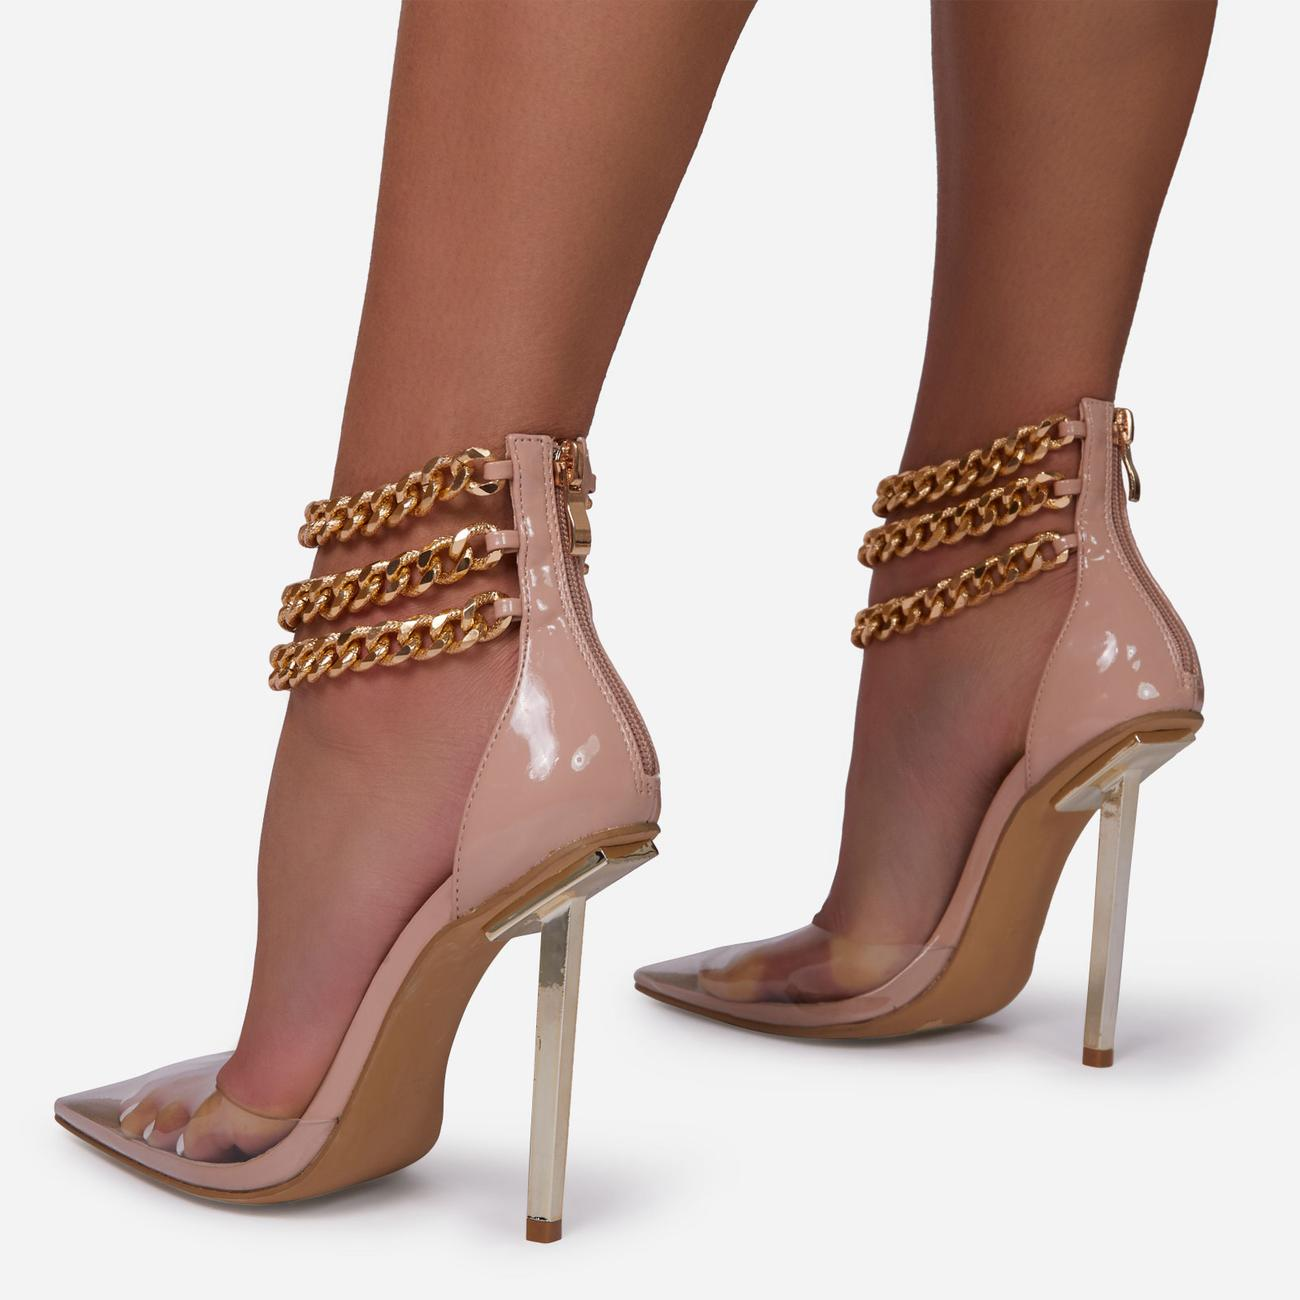 City-Life Triple Chain Detail Clear Perspex Pointed Toe Metallic Heel In Nude Patent Image 4